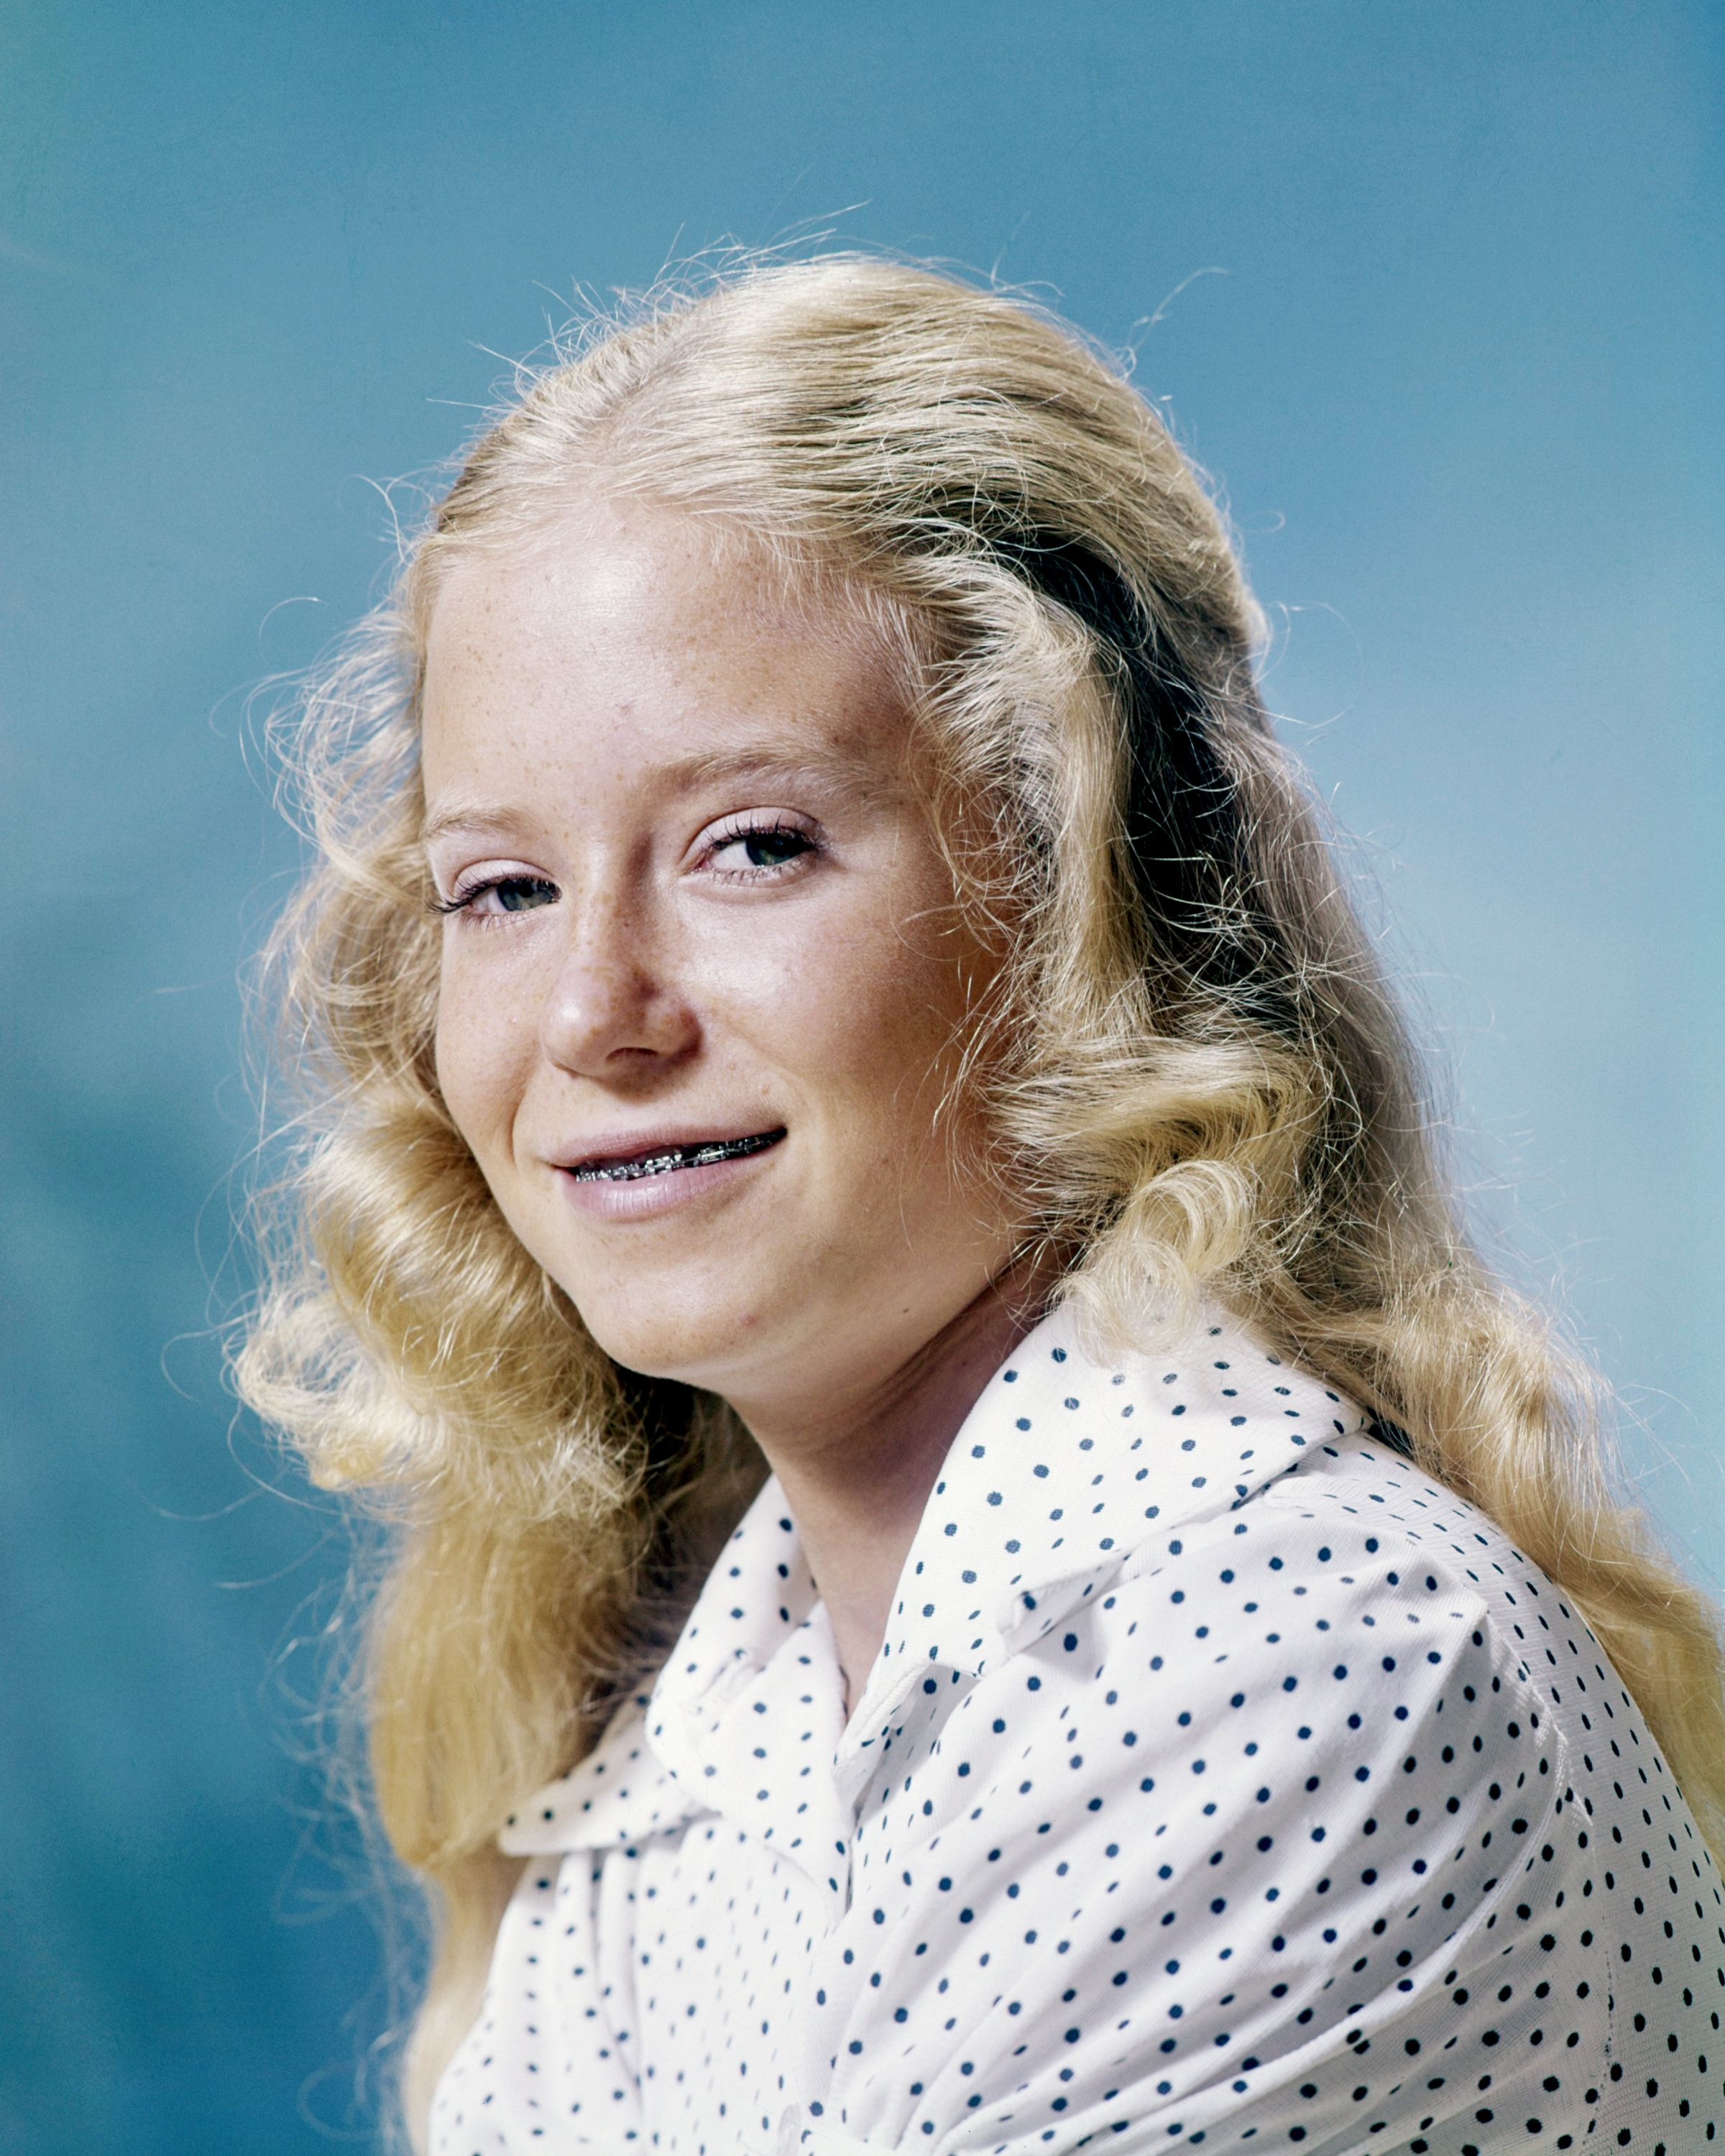 Eve Plumb, circa 1972. Plumb is best known for playing Jan Brady in the American TV series 'The Brady Bunch'. | Source: Getty Images